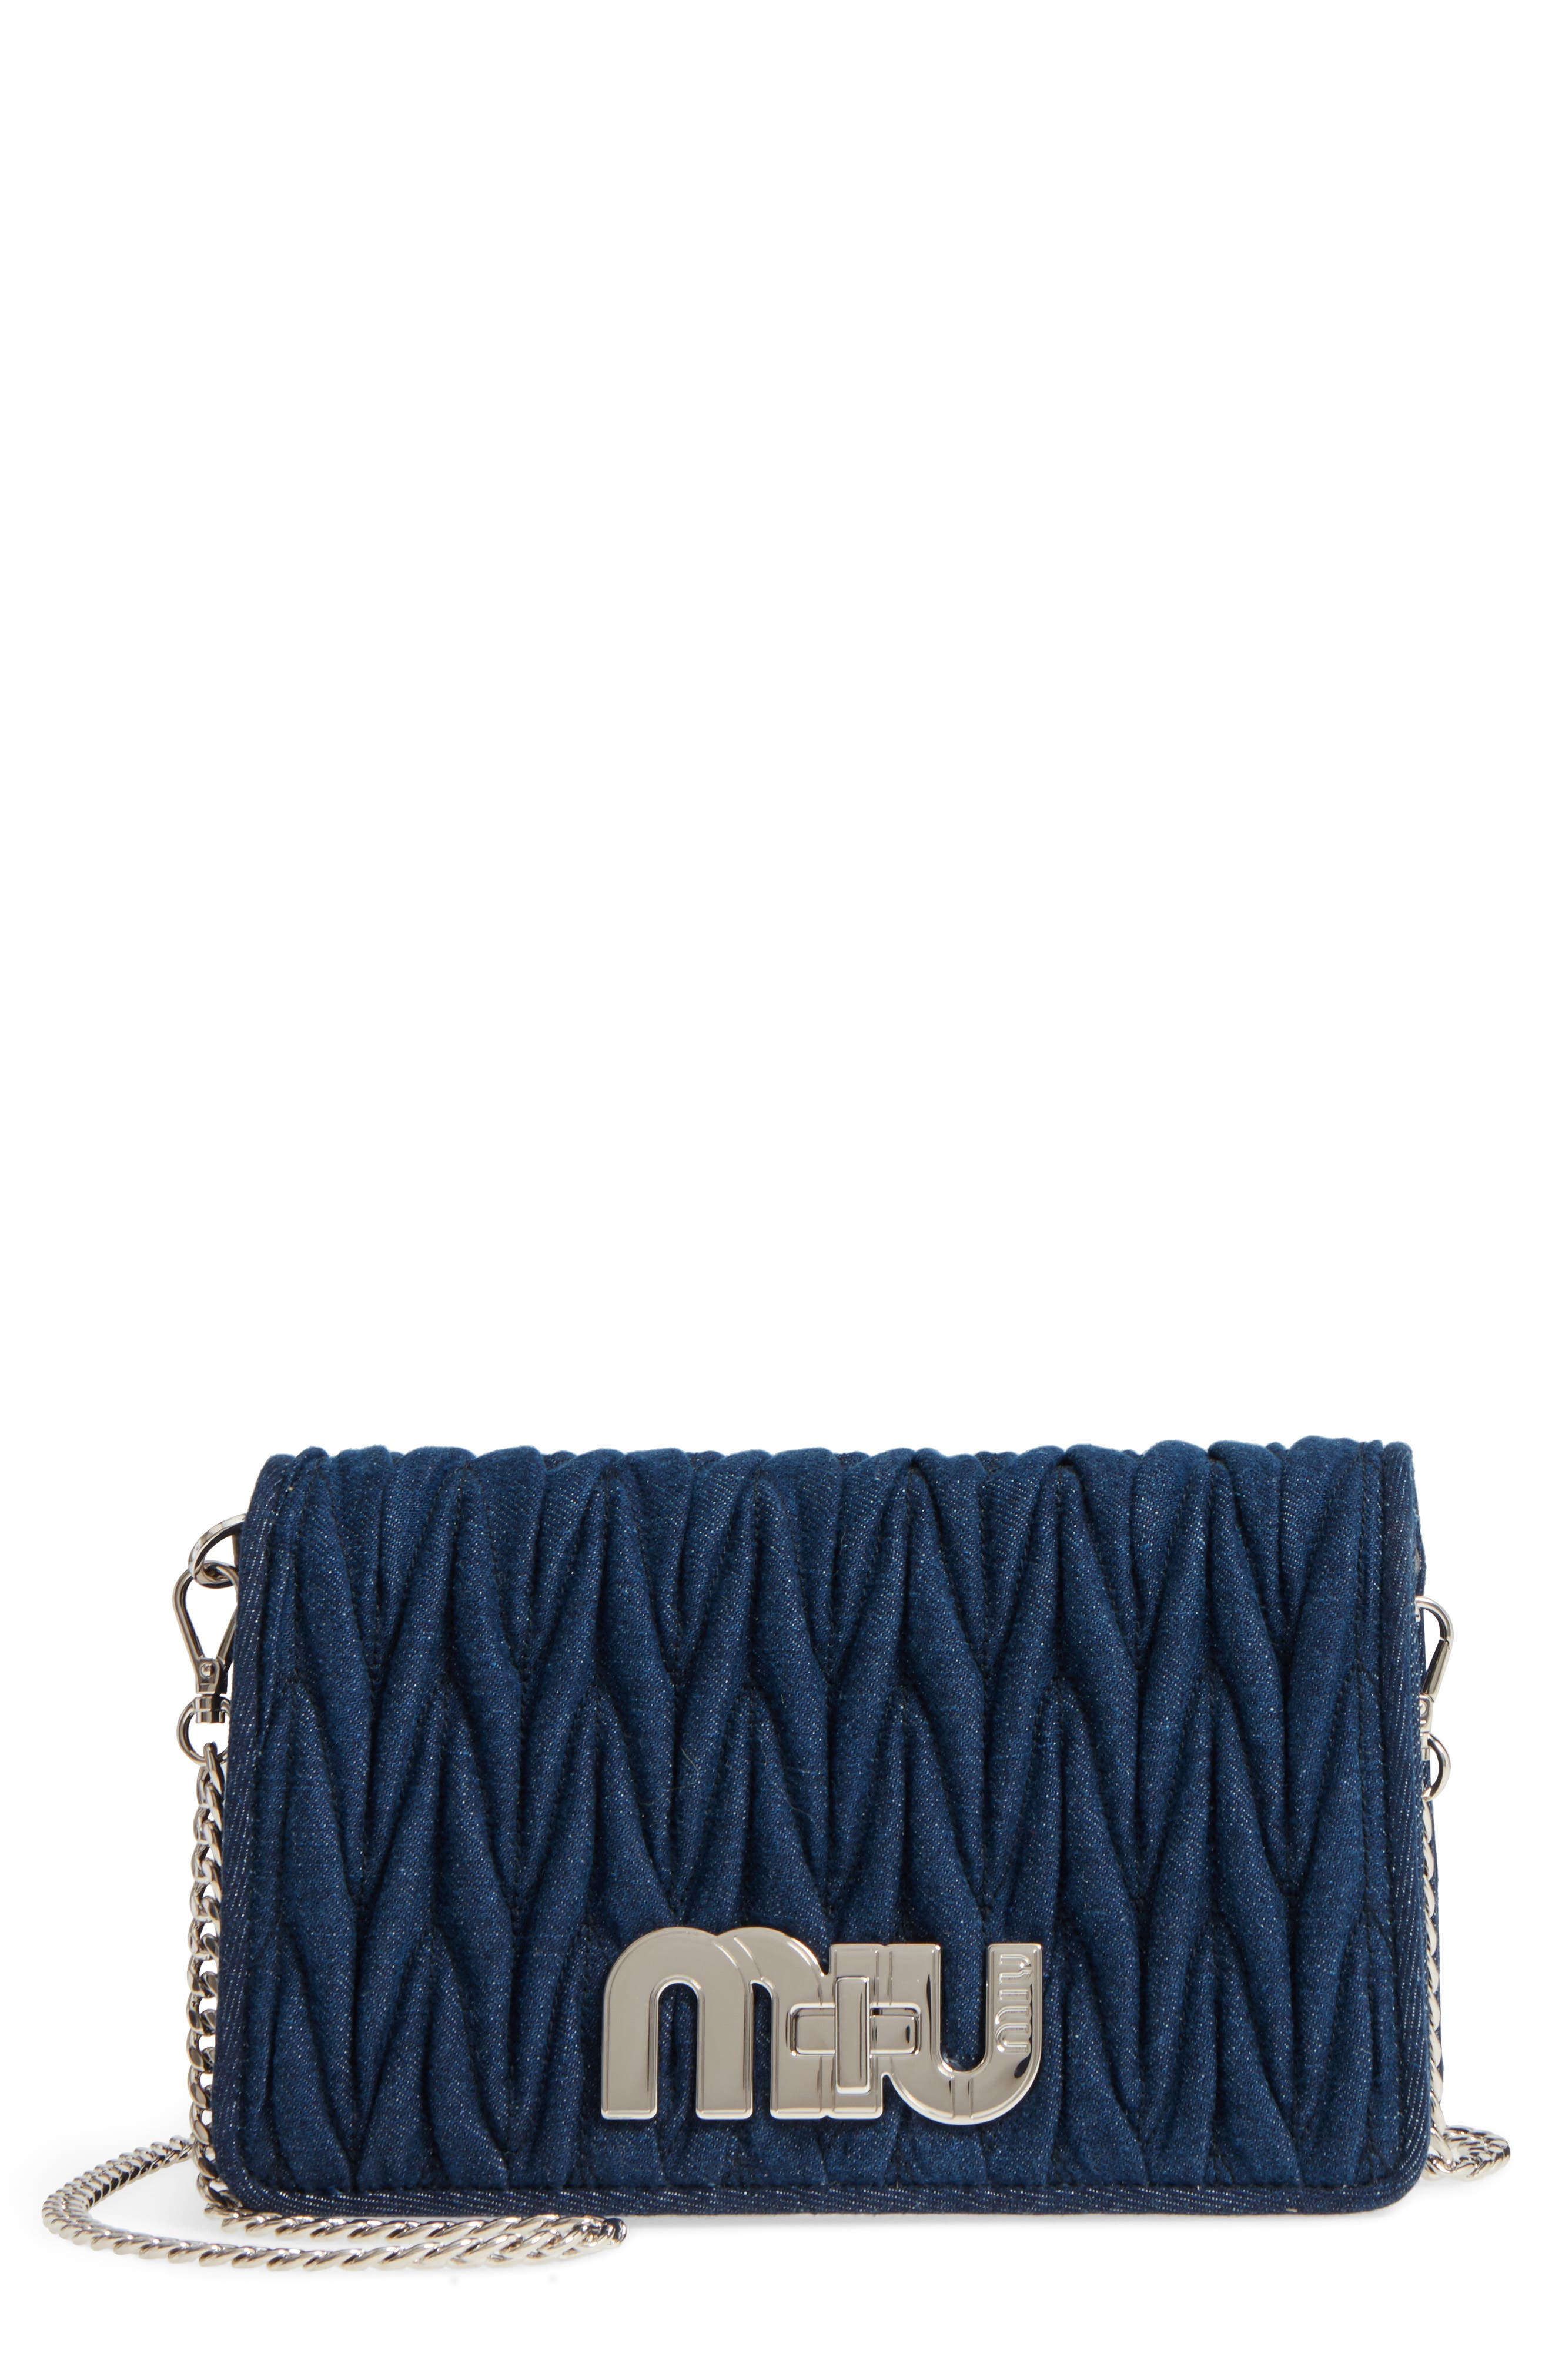 Matelassé Denim Crossbody Clutch,                             Main thumbnail 1, color,                             Bleu